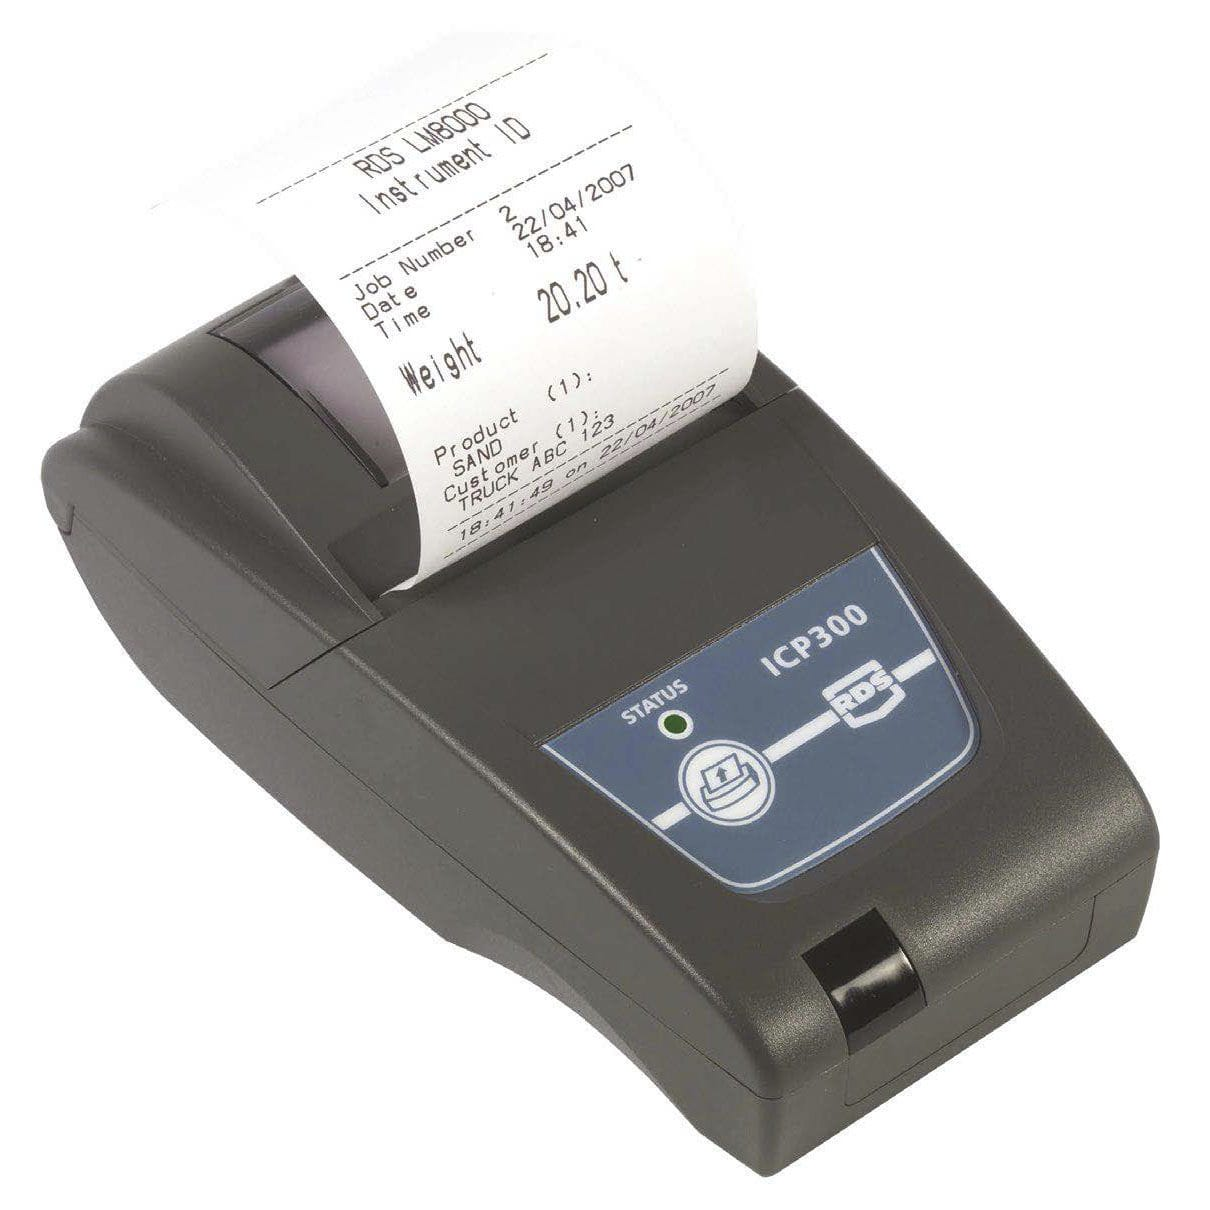 Direct thermal receipt printer - ICP 300 - RDS Technology Ltd